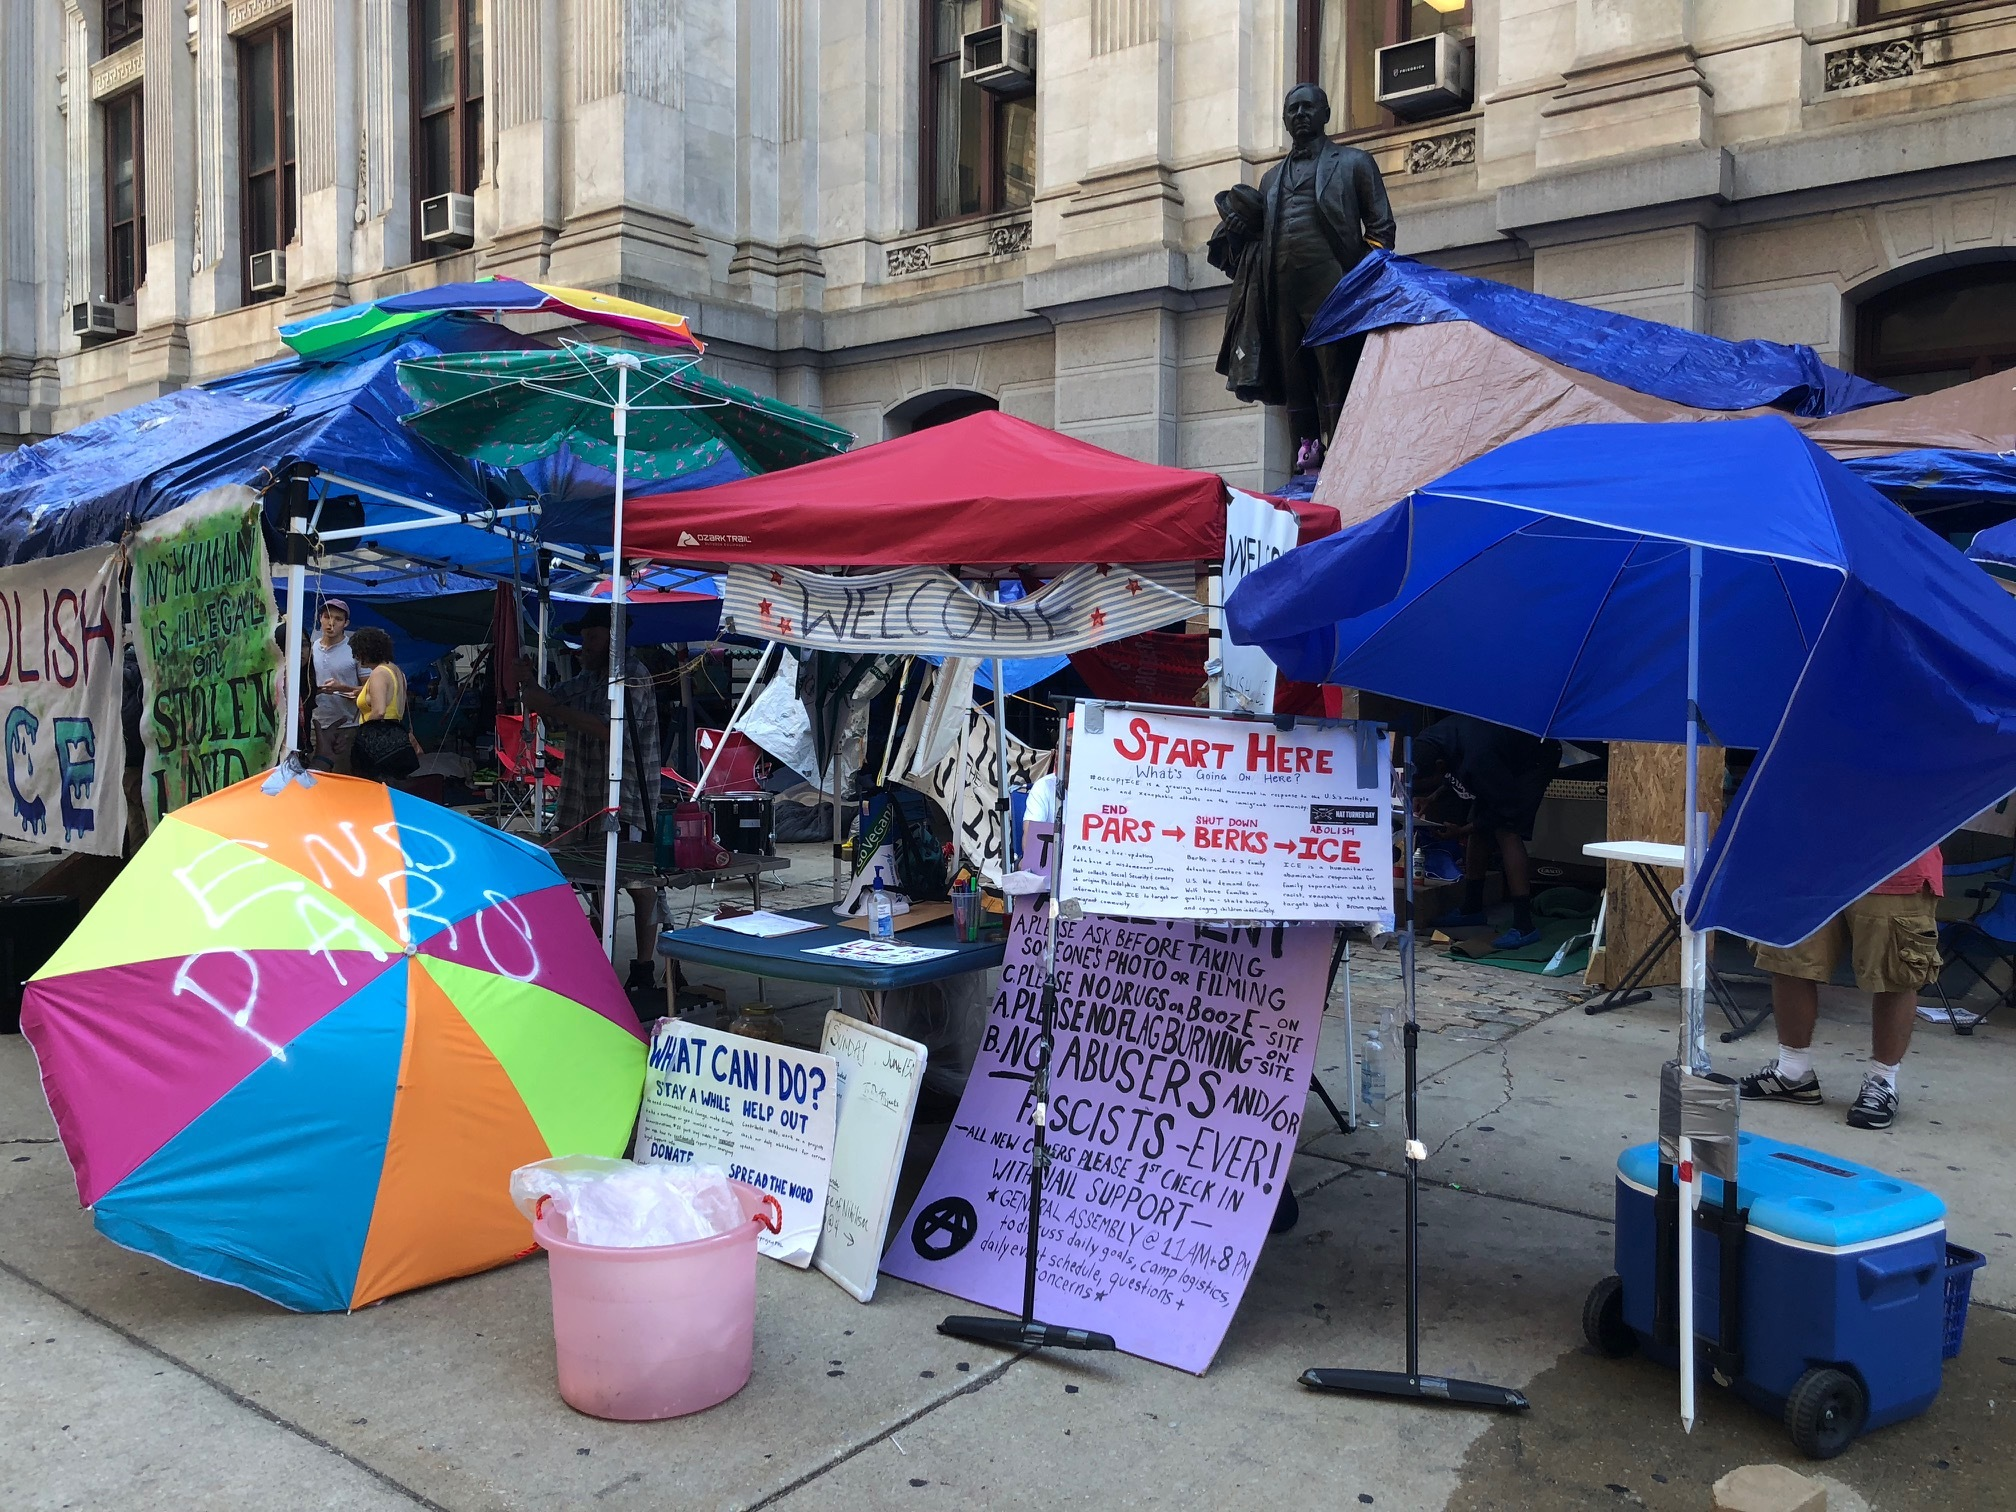 The Occupy ICE encampment ay City Hall after a group of acrivists marched from ICE´s Philadelphia office near 8th and Cherry Streets, through Chinatown, to City Hall on Wednesday morning.